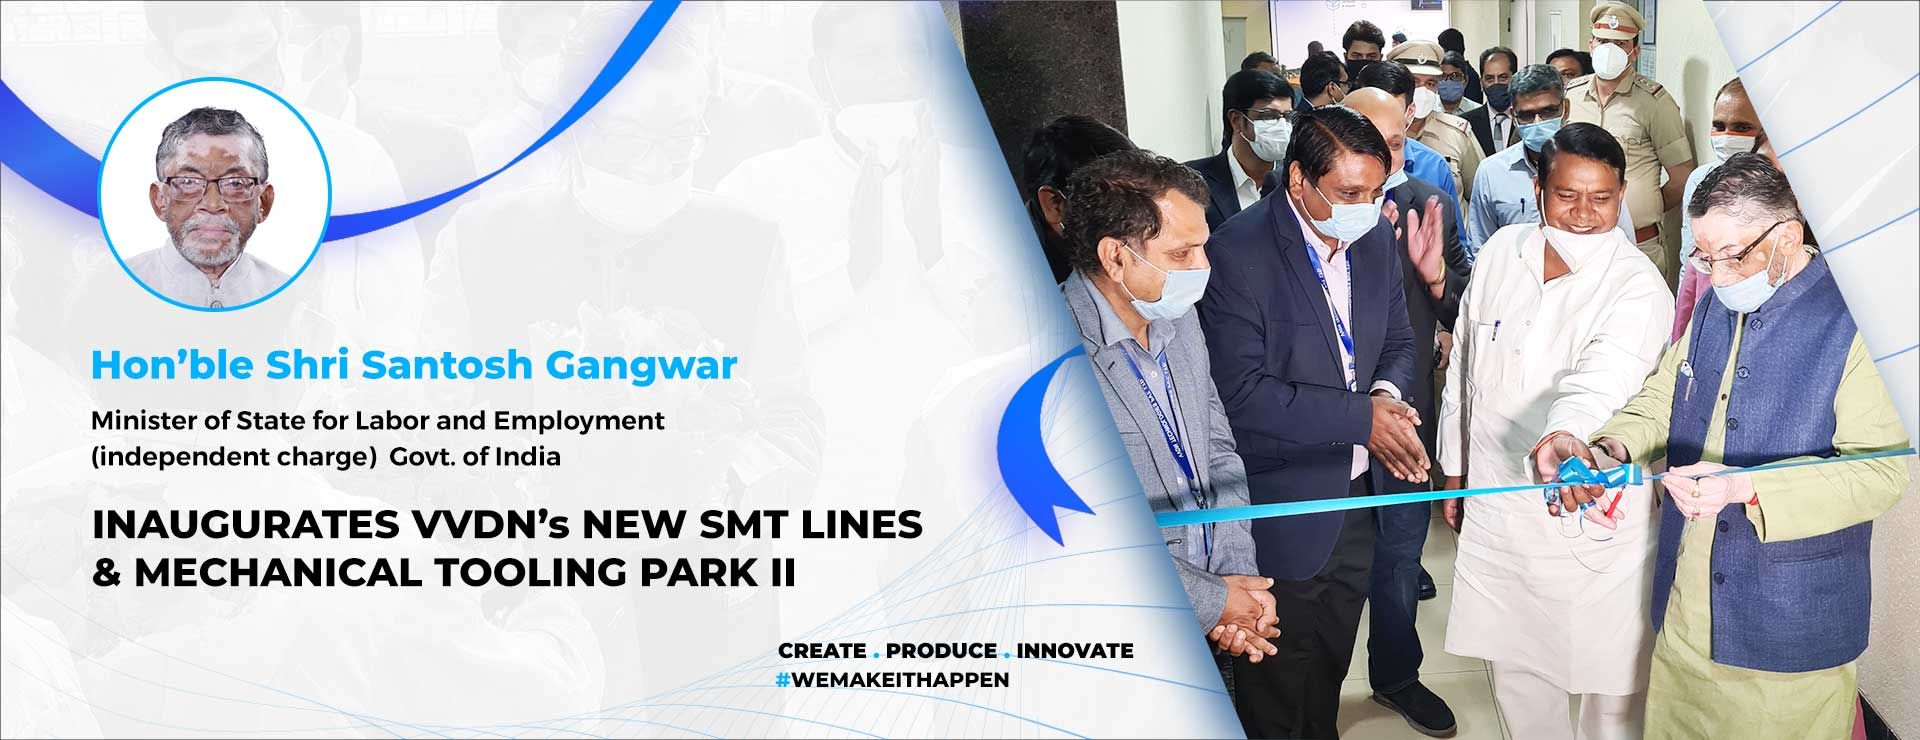 Minister of State for Labor and Employment (independent charge) Santosh Gangwar inaugurates VVDN's new SMT Facility and Mechanical Tooling Park-II